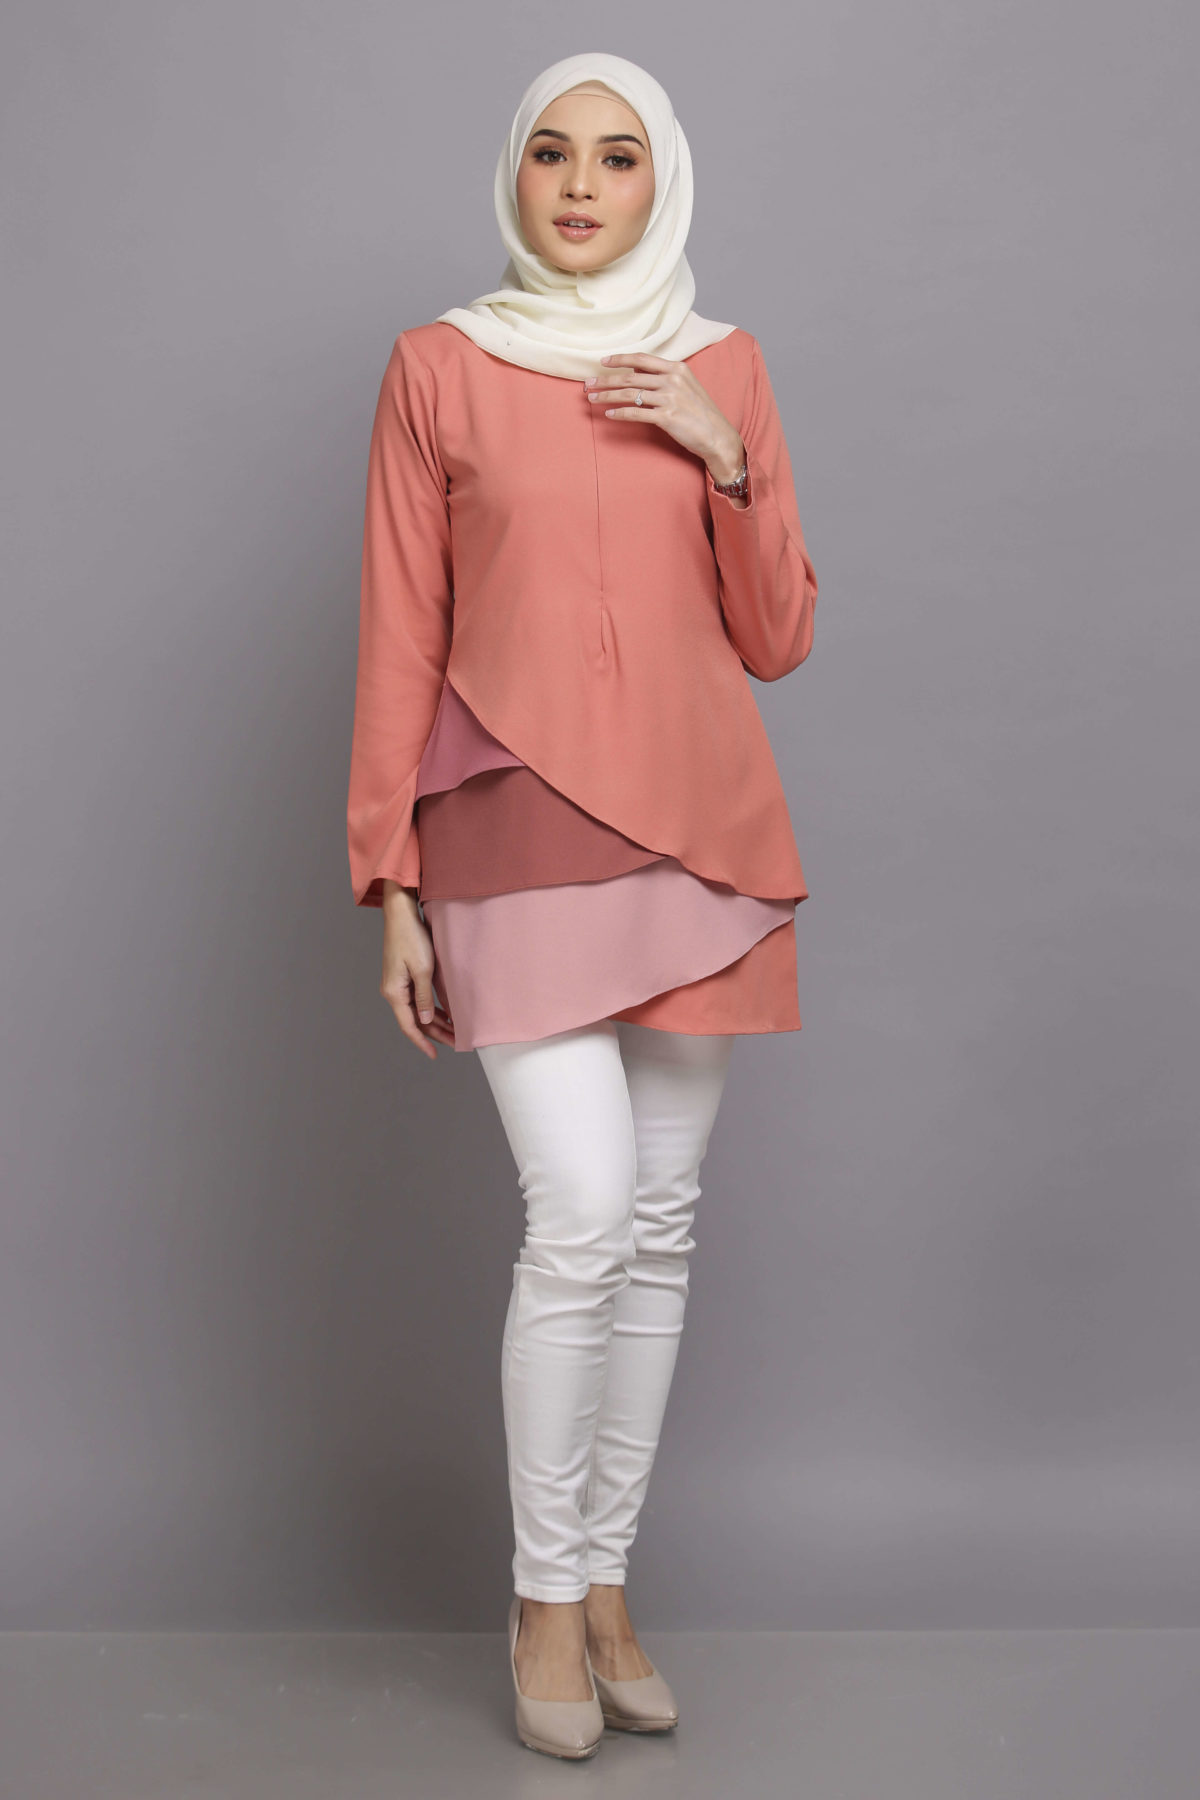 Fressia Peach Orange (2)